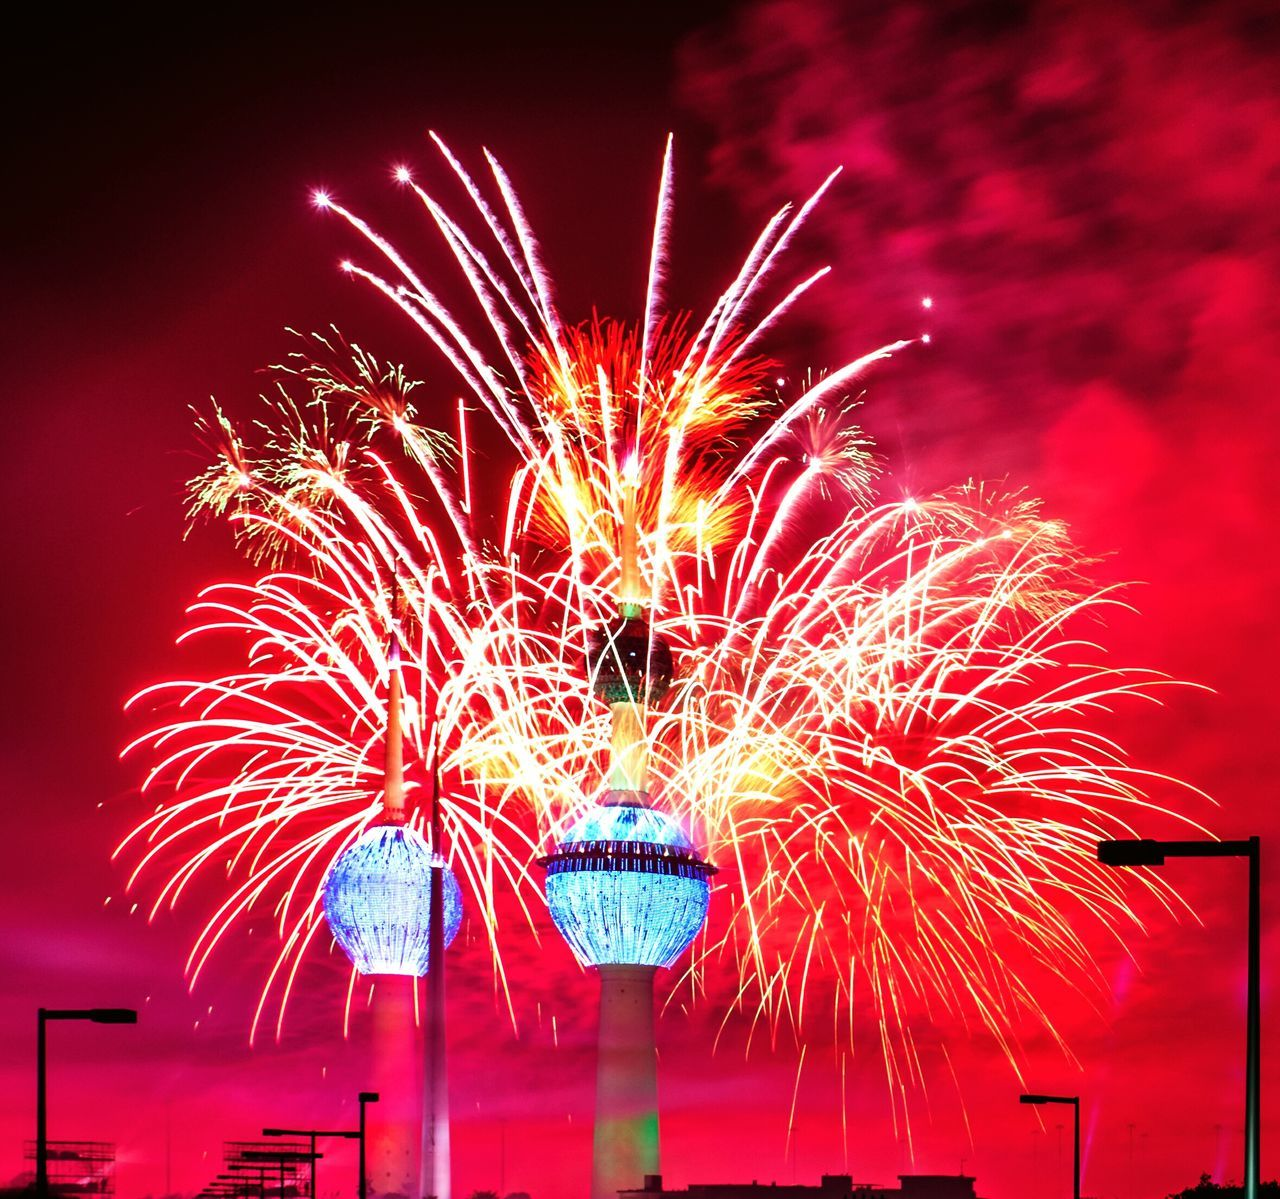 Photography In Motion Fireworks Kuwait Kuwait Towers كويت الكويت أبراج الكويت ابراج الكويت ابراج الكويت 👌 العاب نارية العاب نارية Celebrating Kuwait Towers in March 5th Colour Of Life